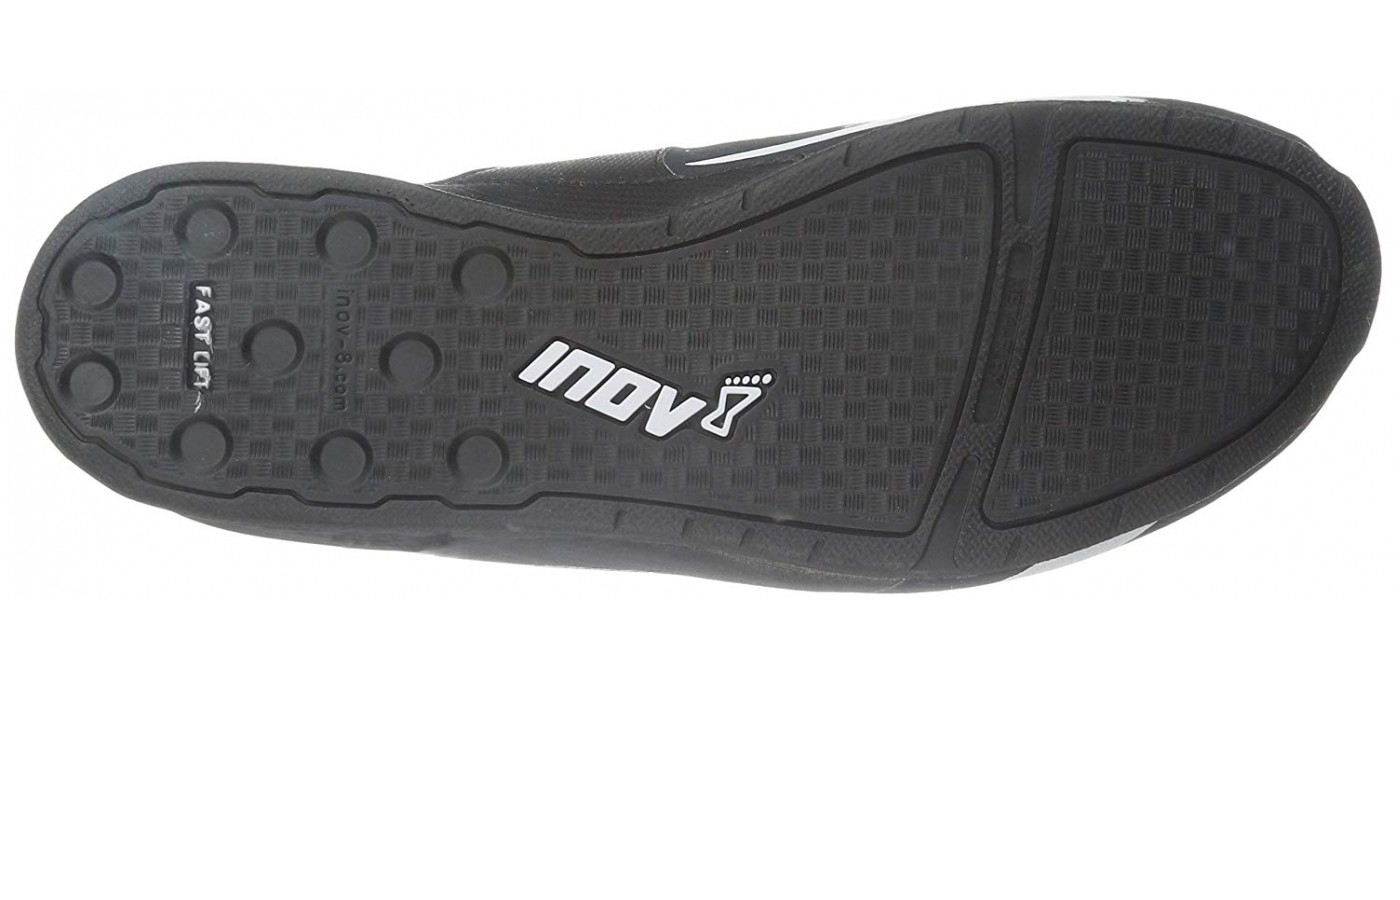 The outsole has a sticky rubber material.